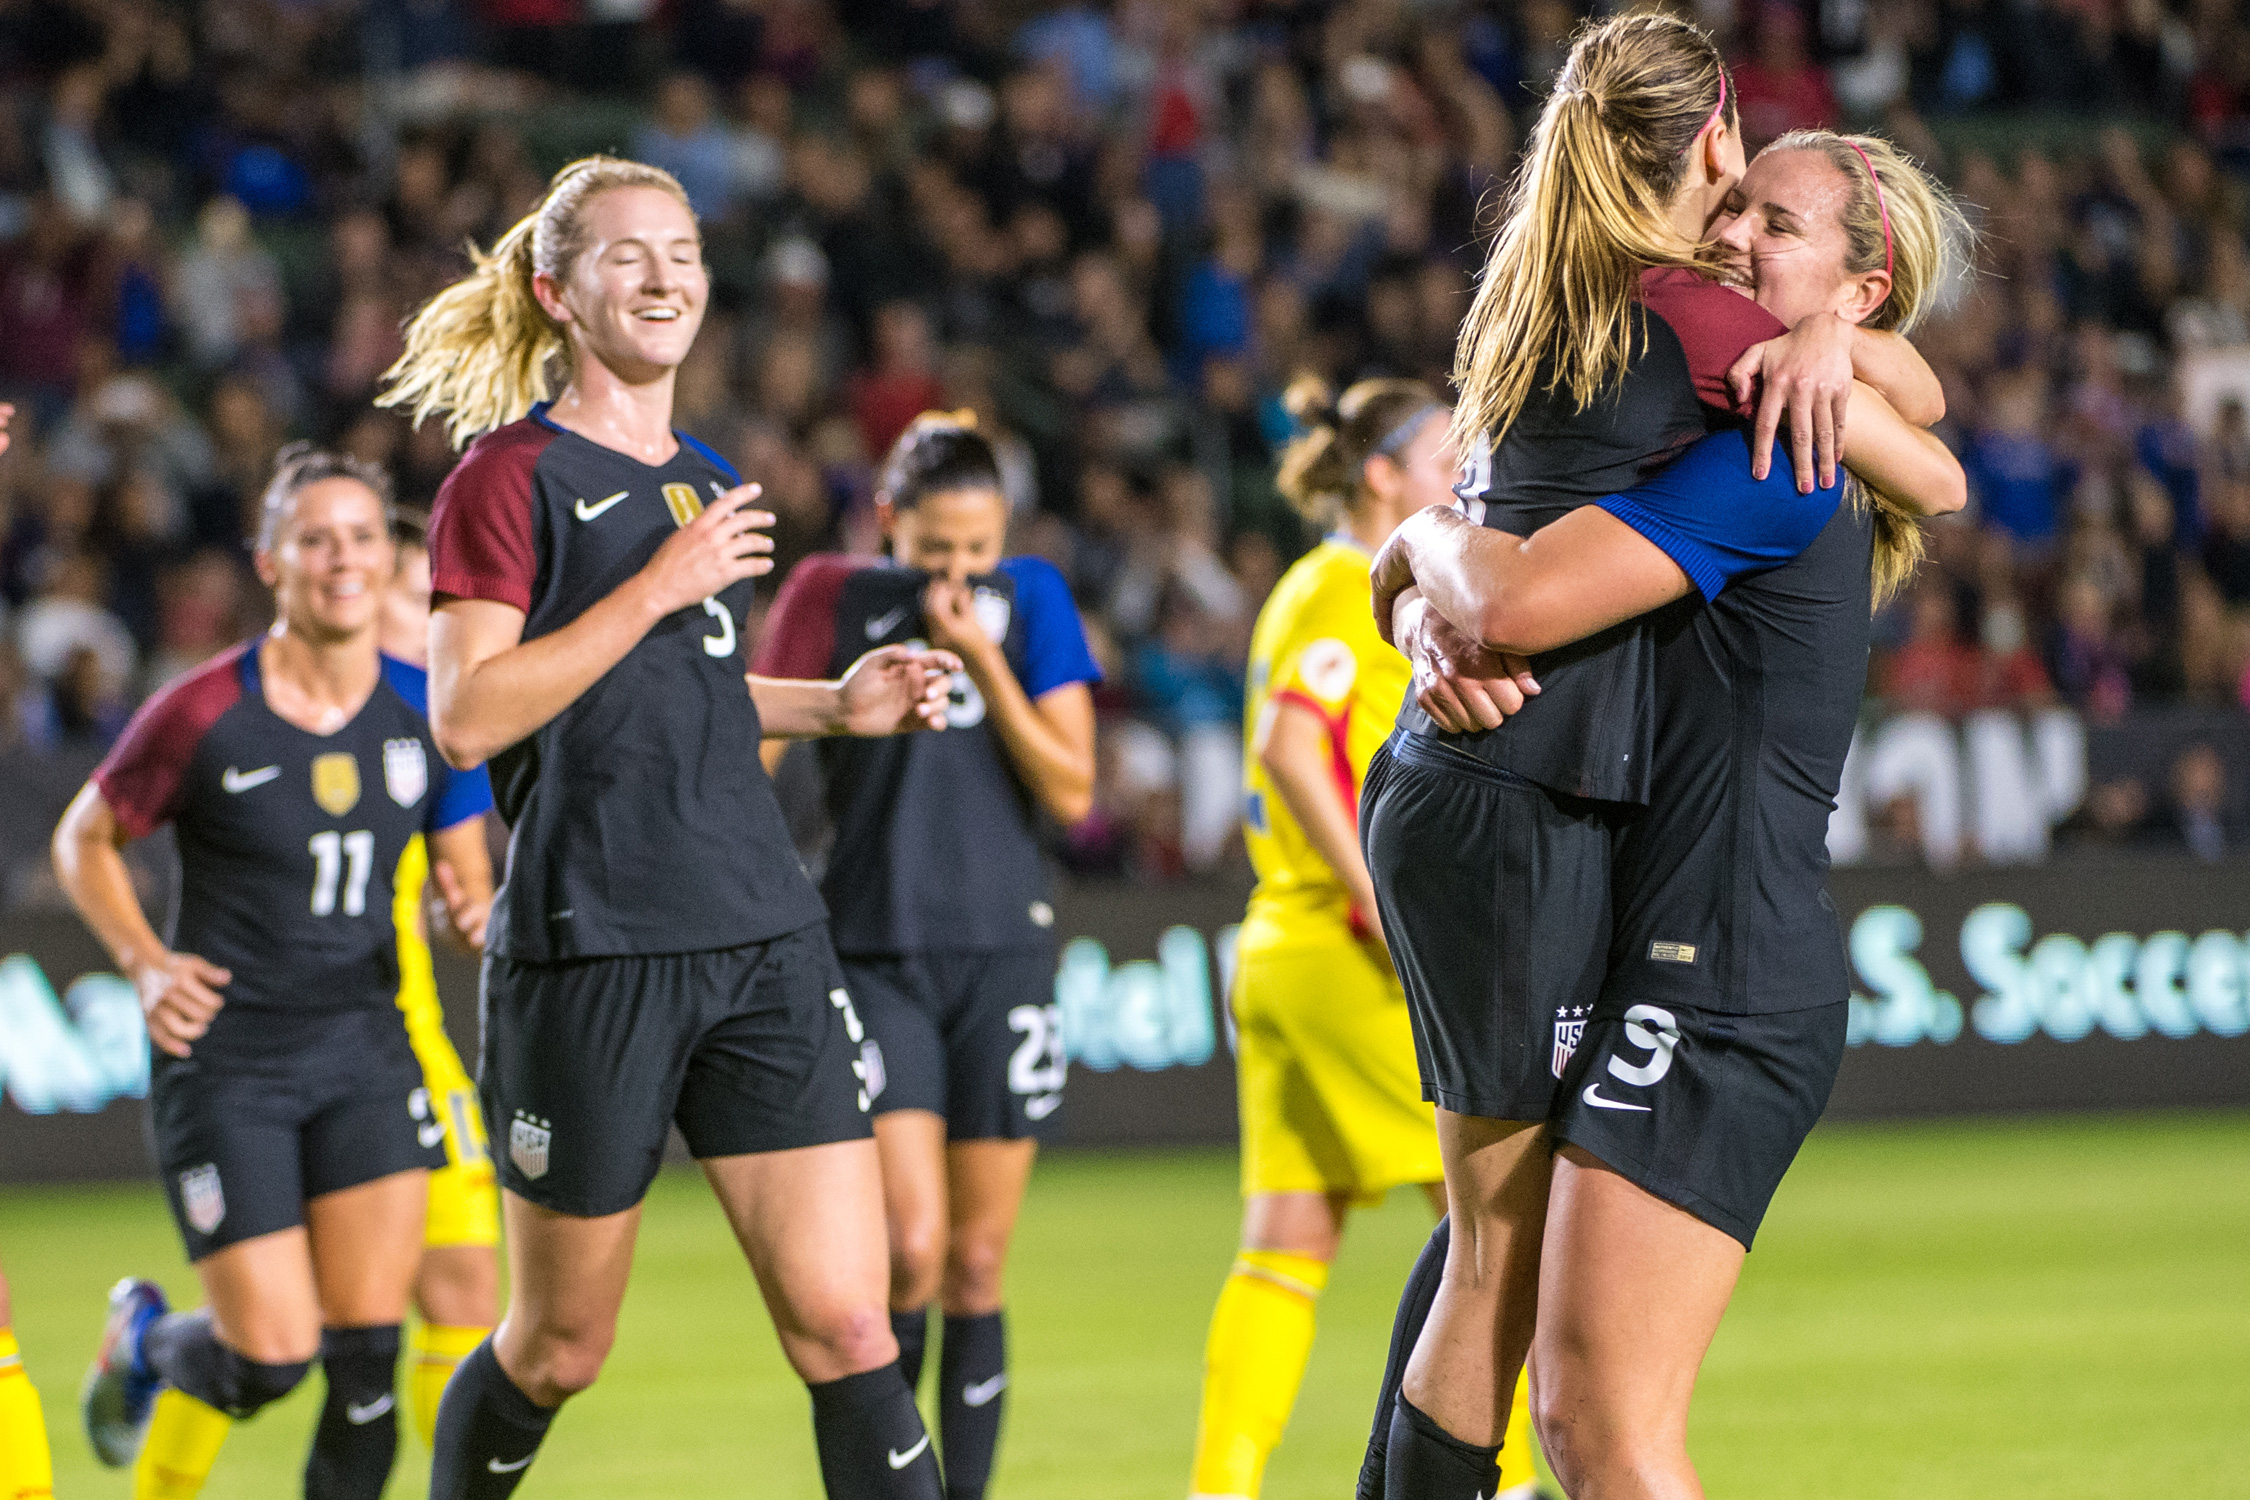 Morgan Brian gets a congratulatory hug after her converted penalty kick, which helped the U.S. women close out 2016 with a 5-0 rout of Romania at StubHub Center in Carson, California.